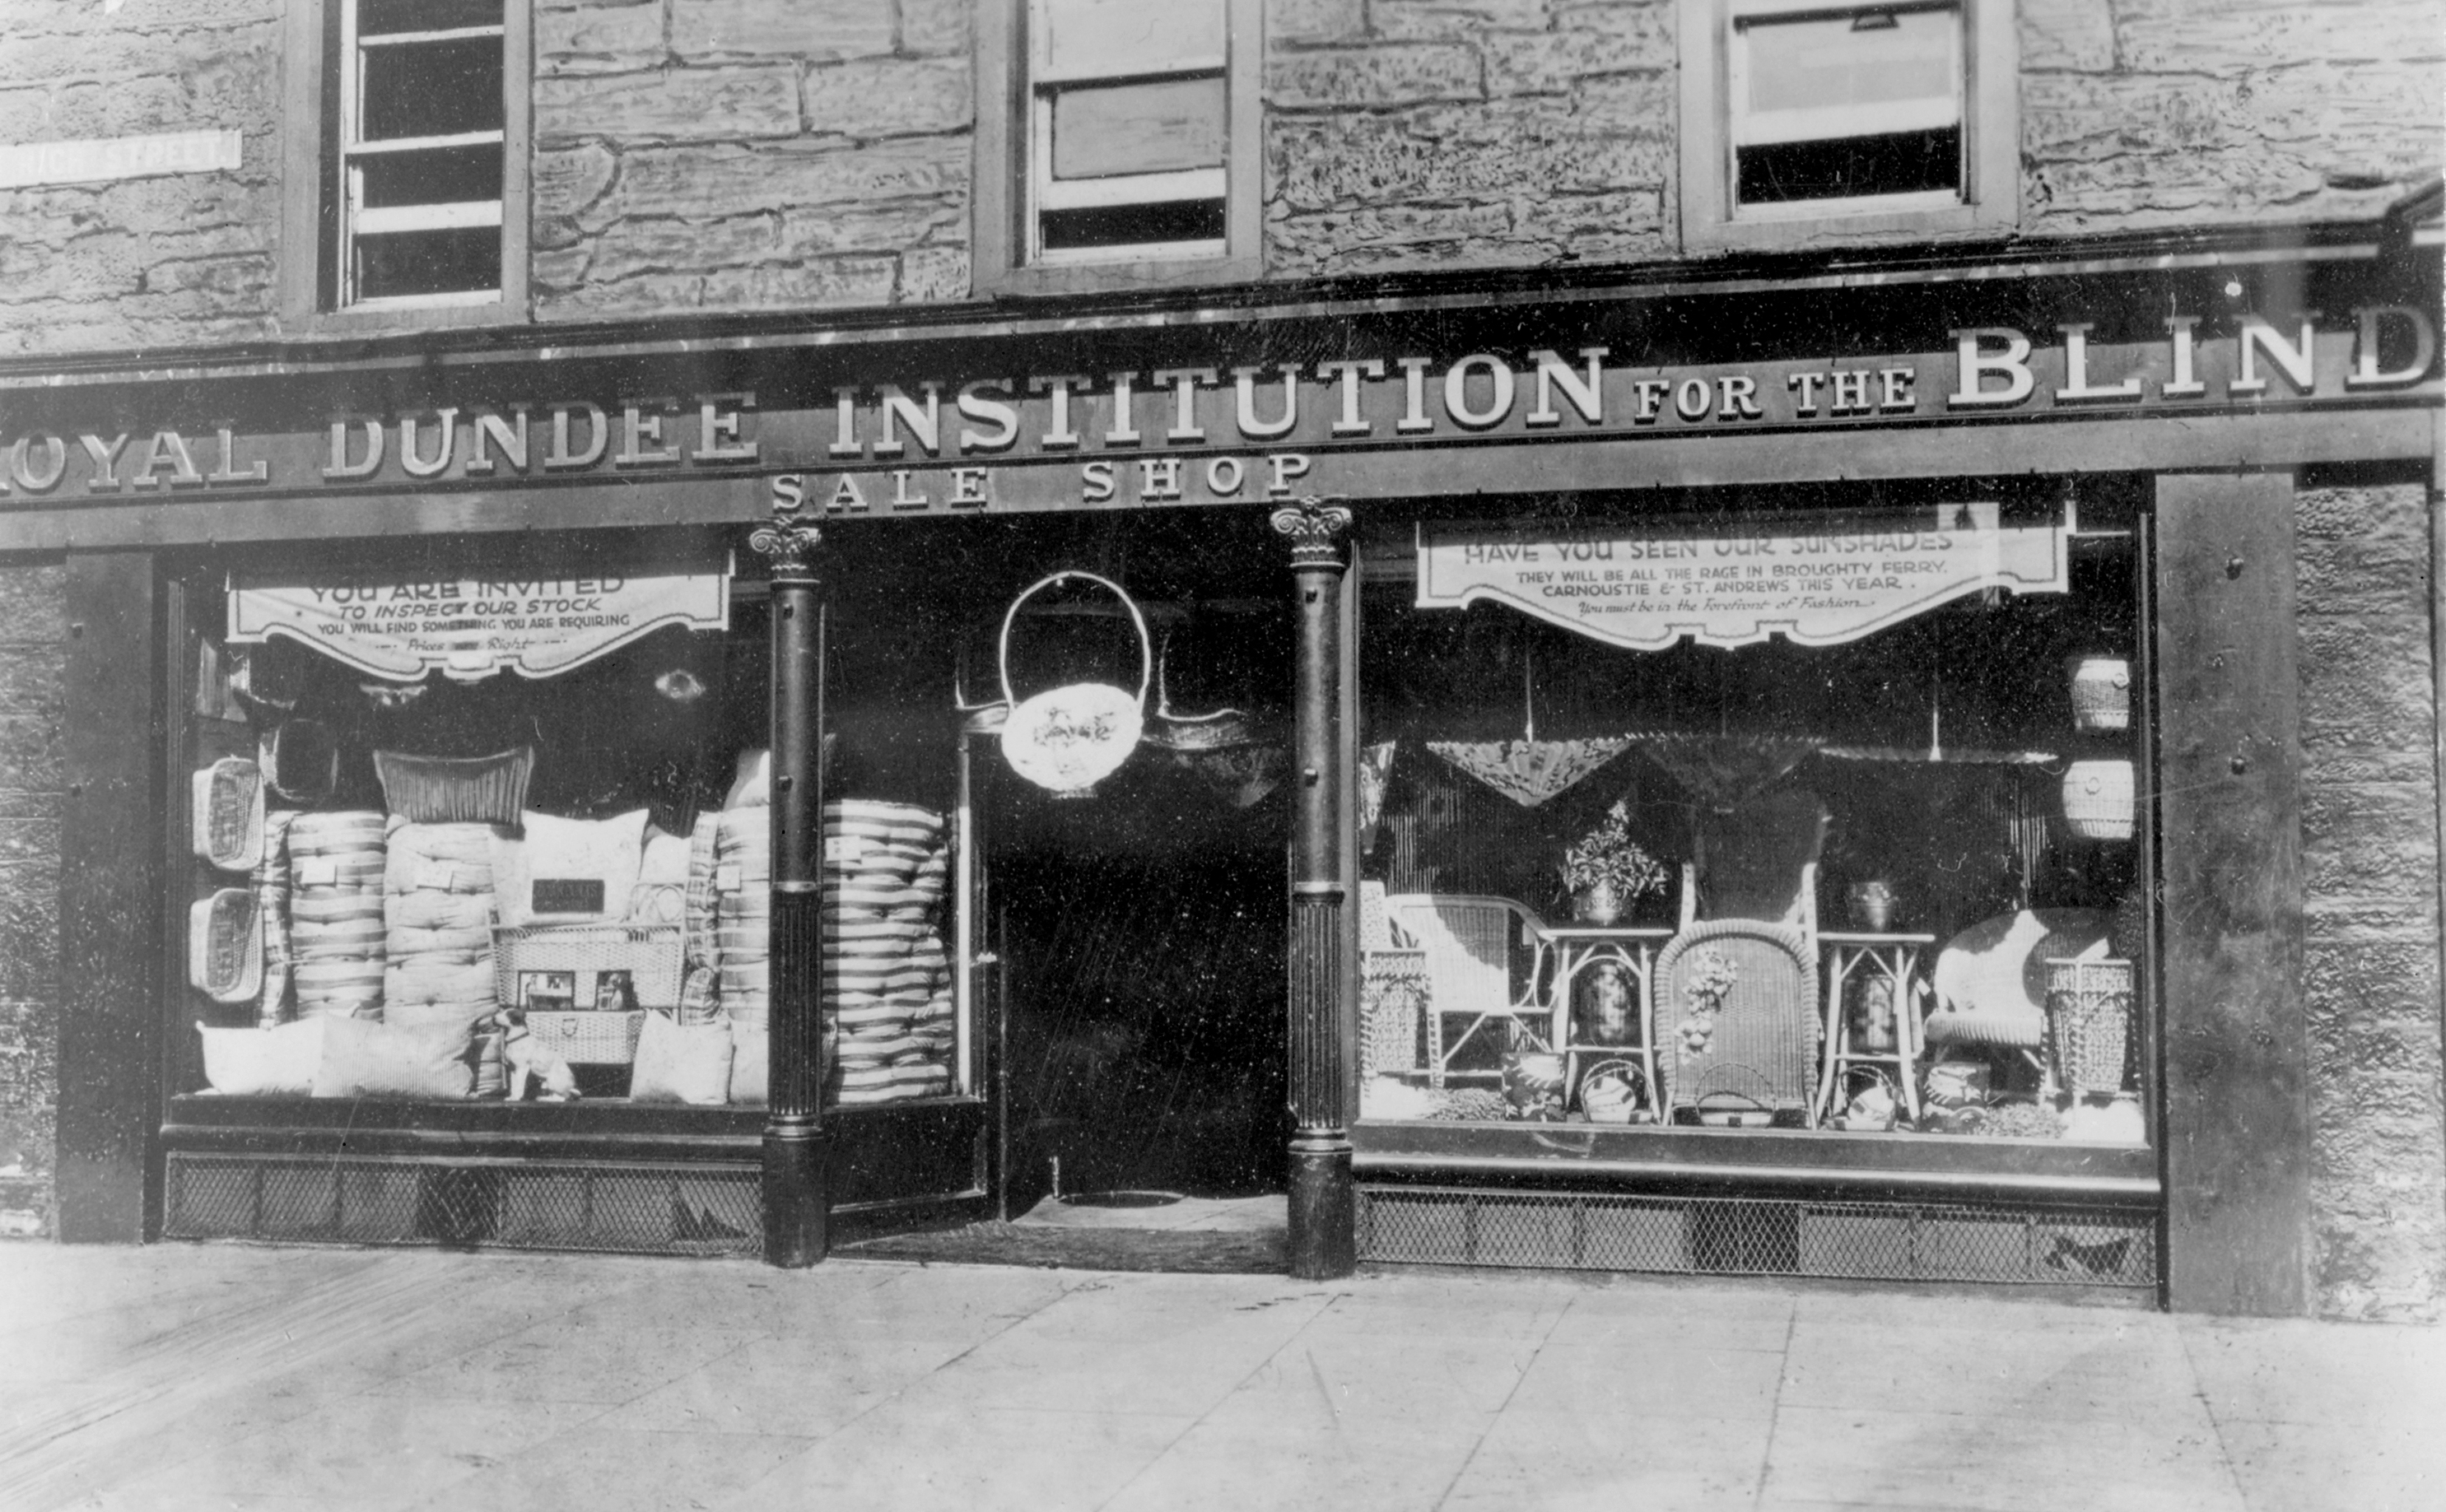 the royal dundee institution for the blind sale shop nethergate dundee 1920s national museums of scotland